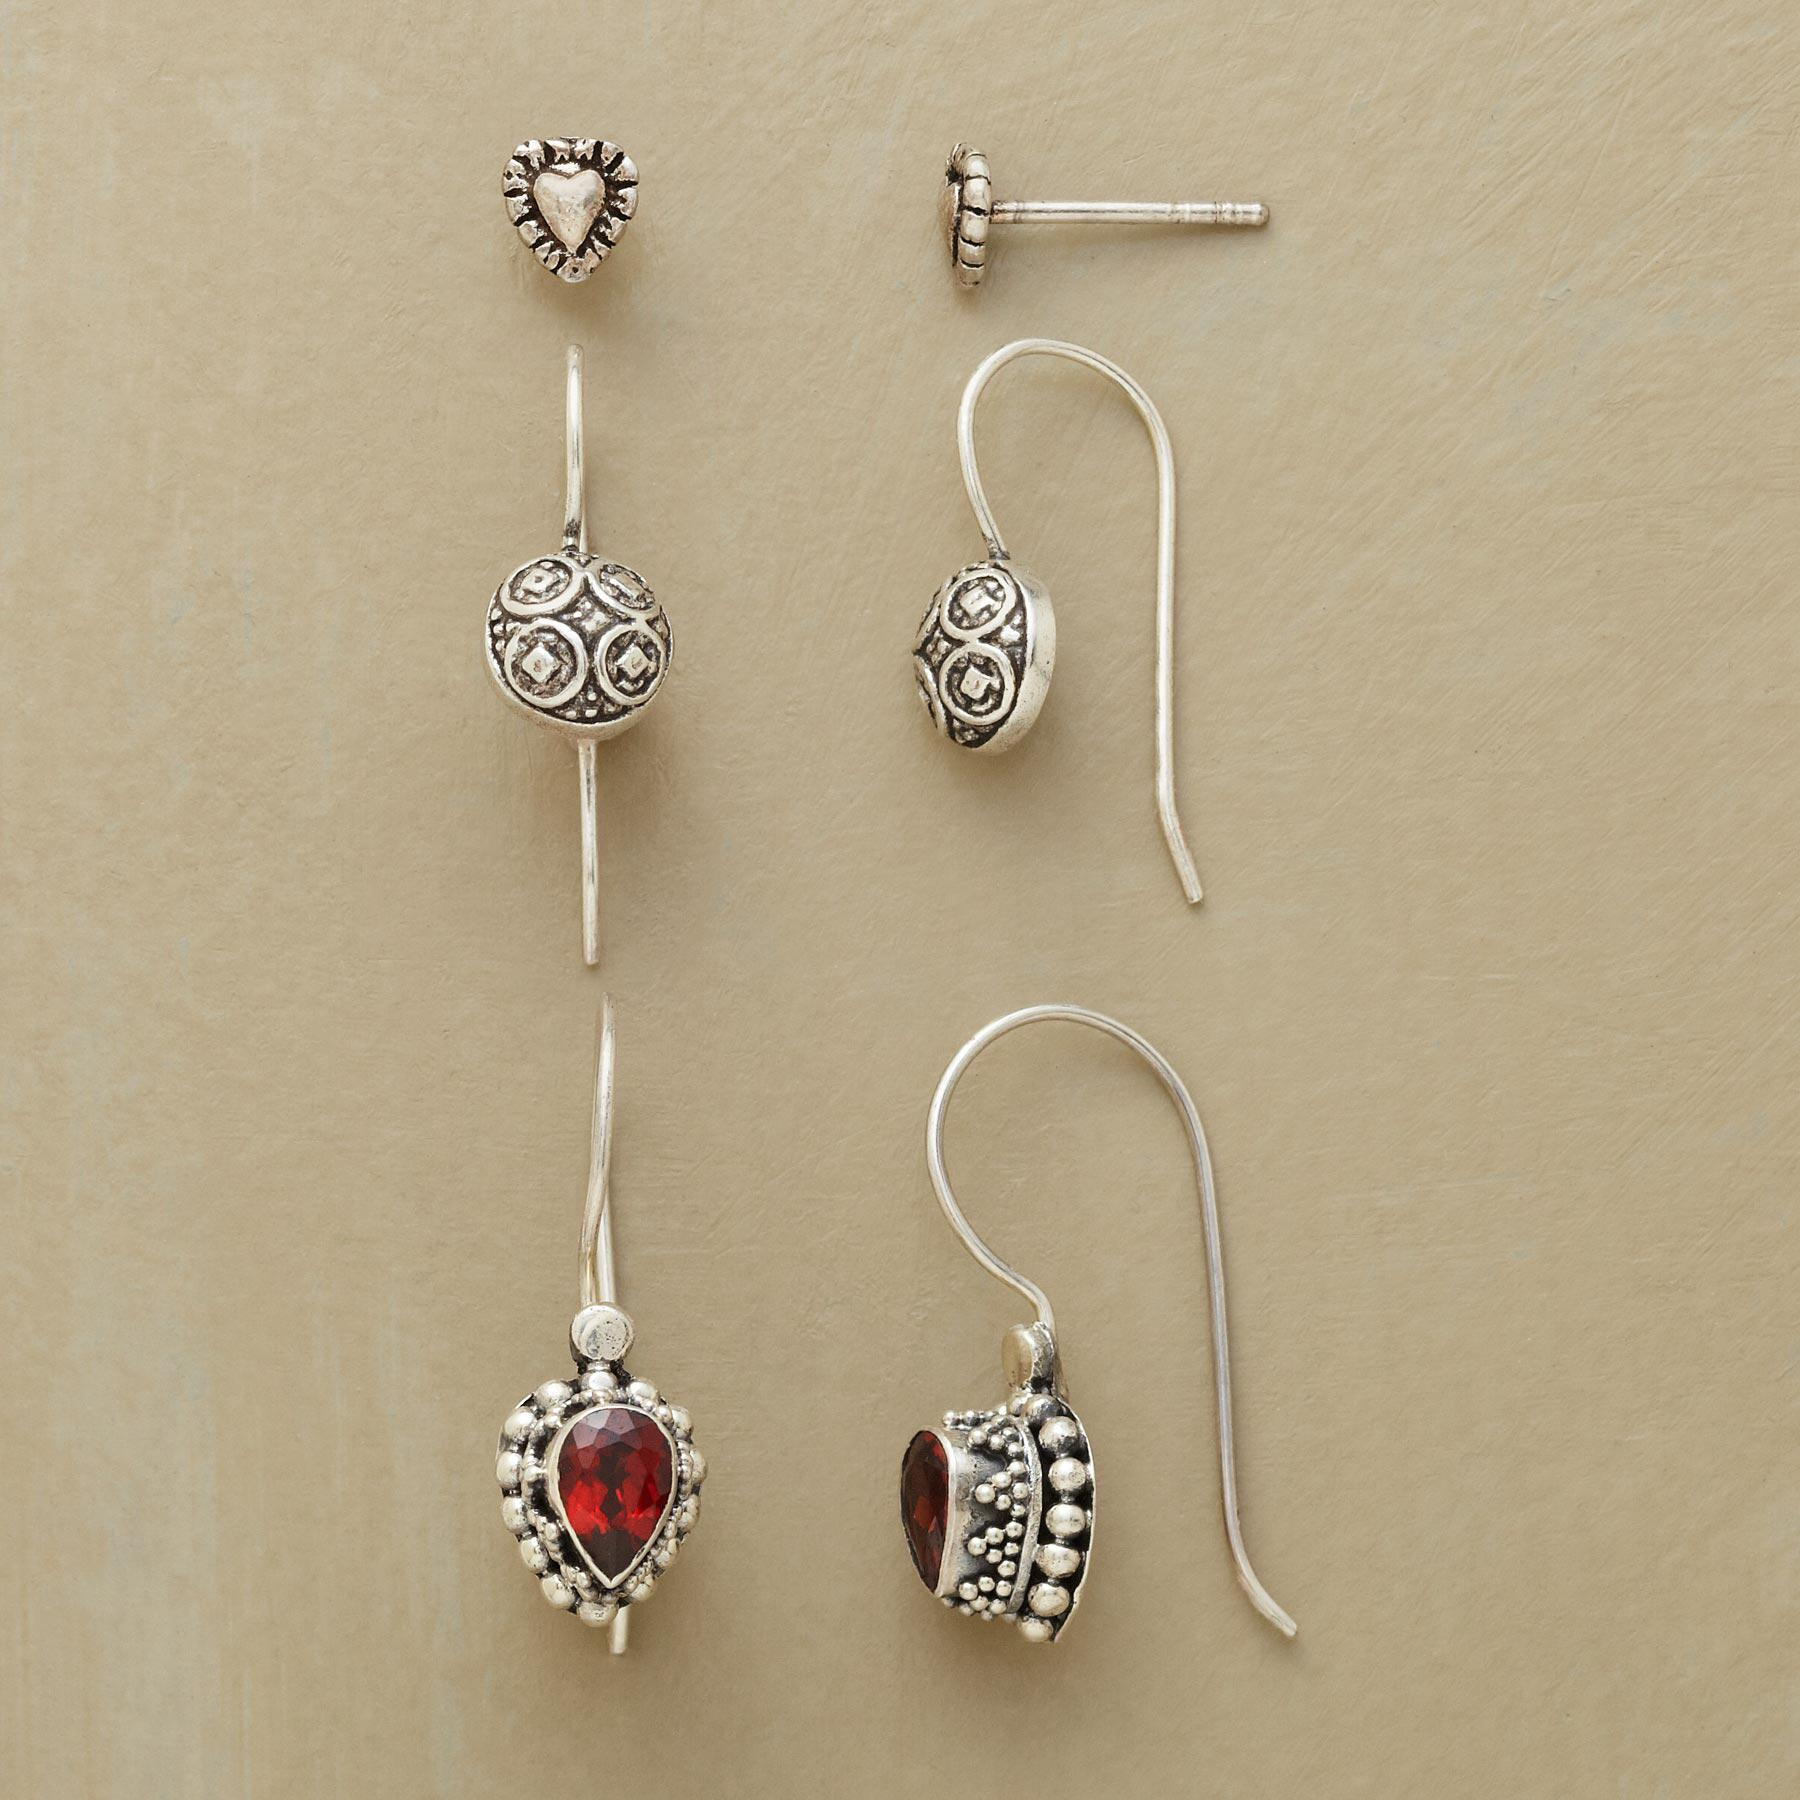 ACCLAIM EARRING TRIO  : View 1